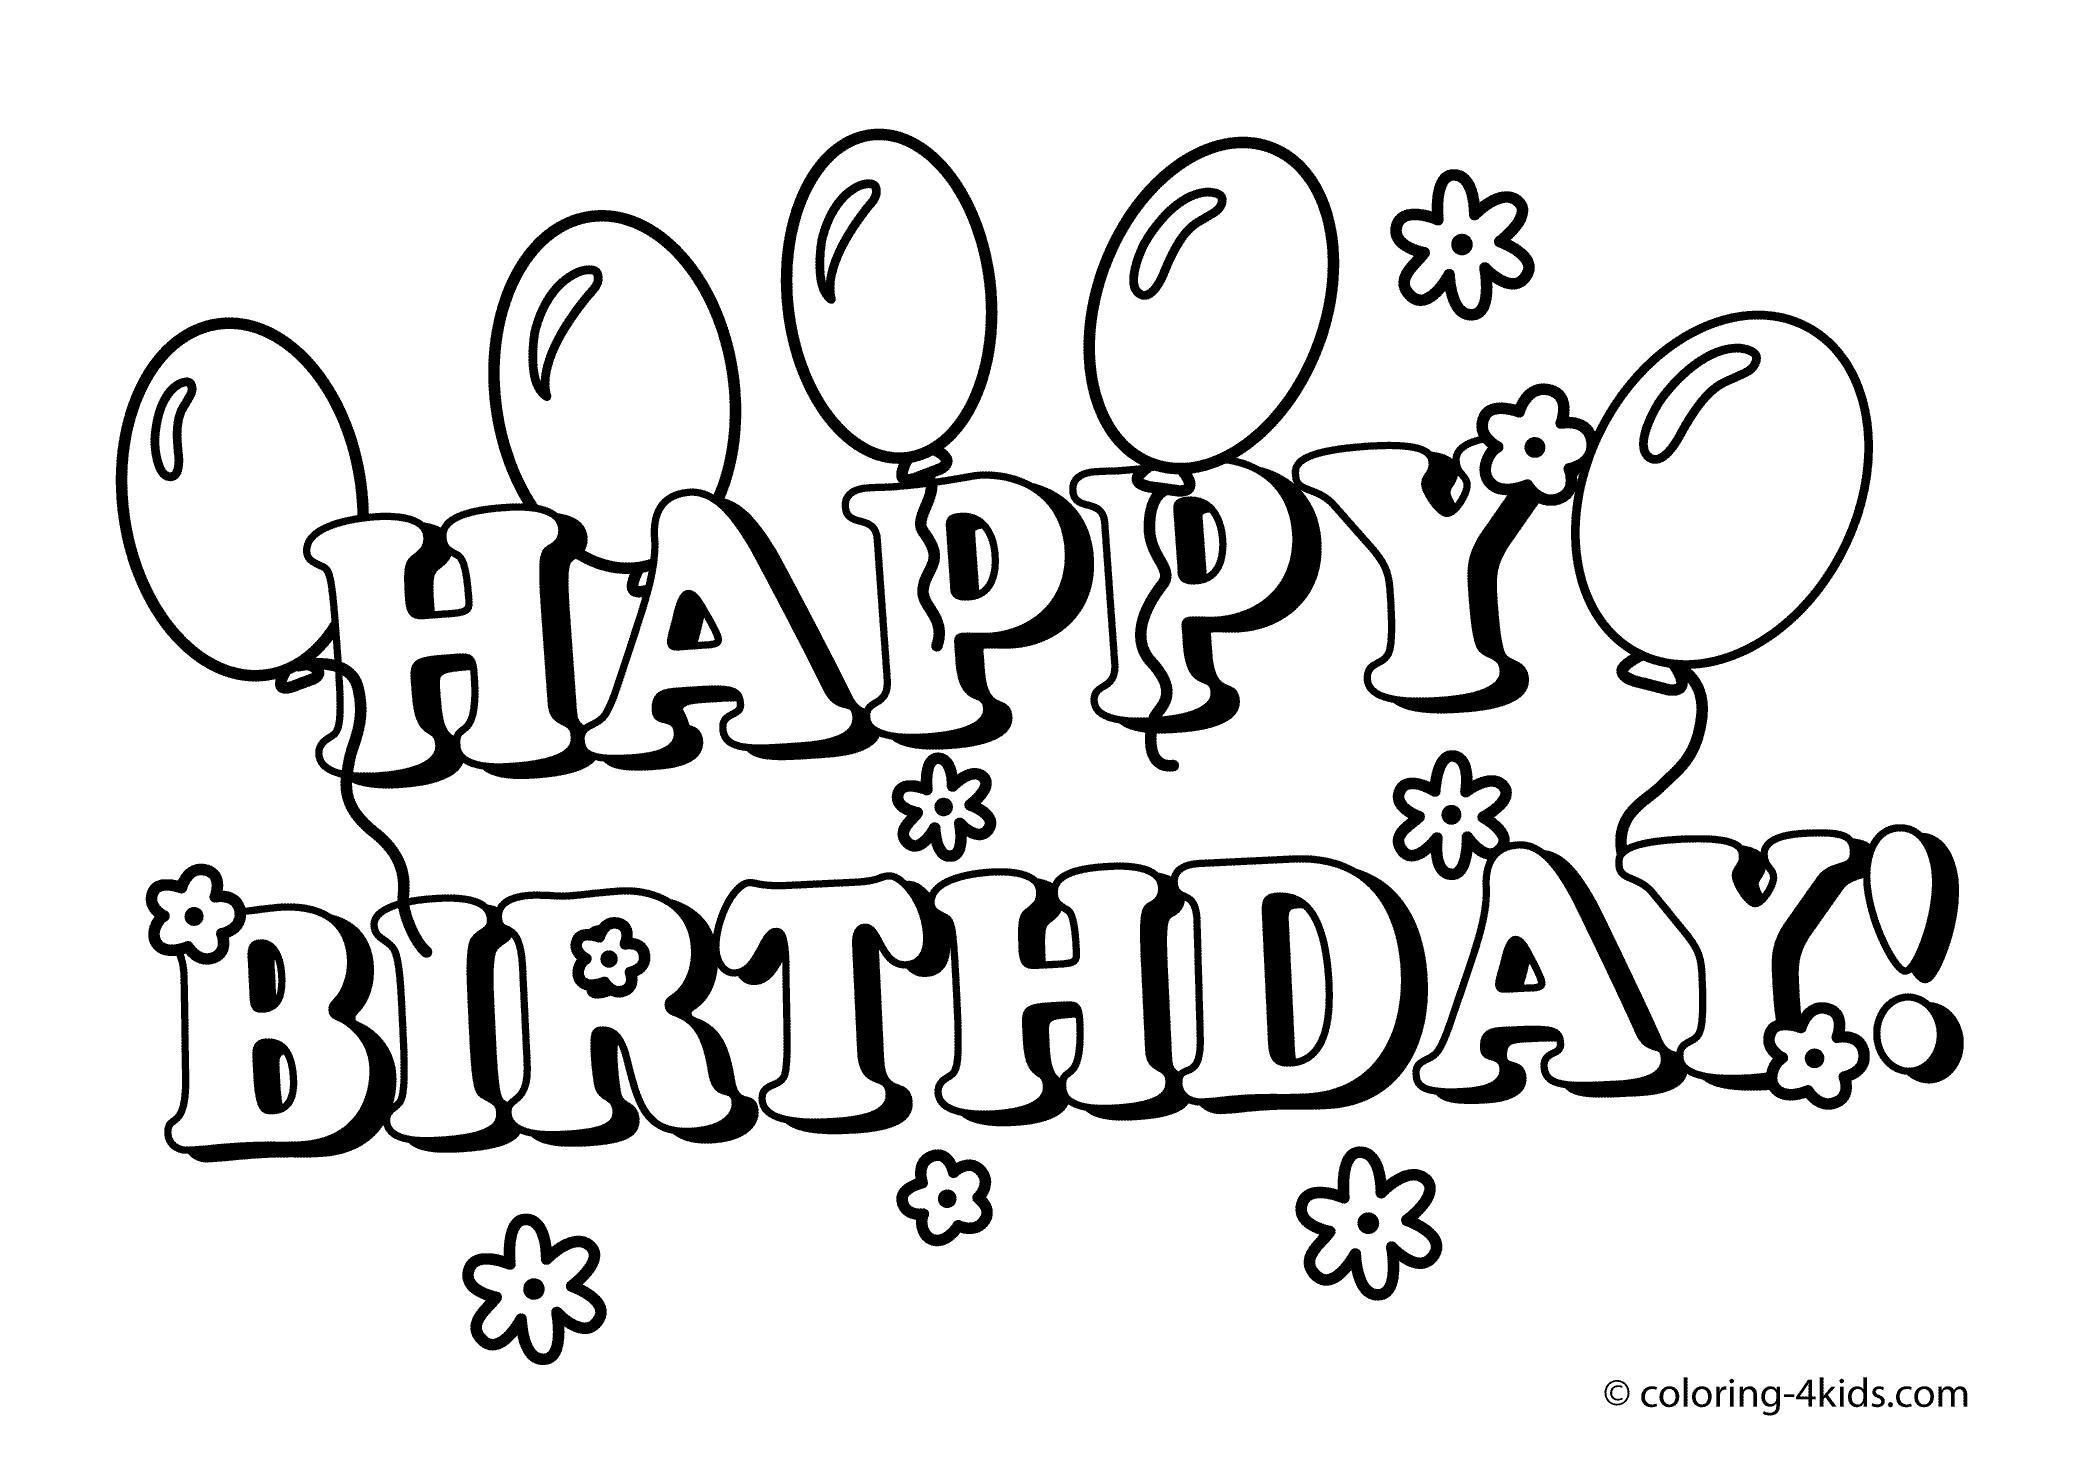 birthday printables to color ; exciting-happy-birthday-coloring-sheets-better-page-printable-pages-that-say-418